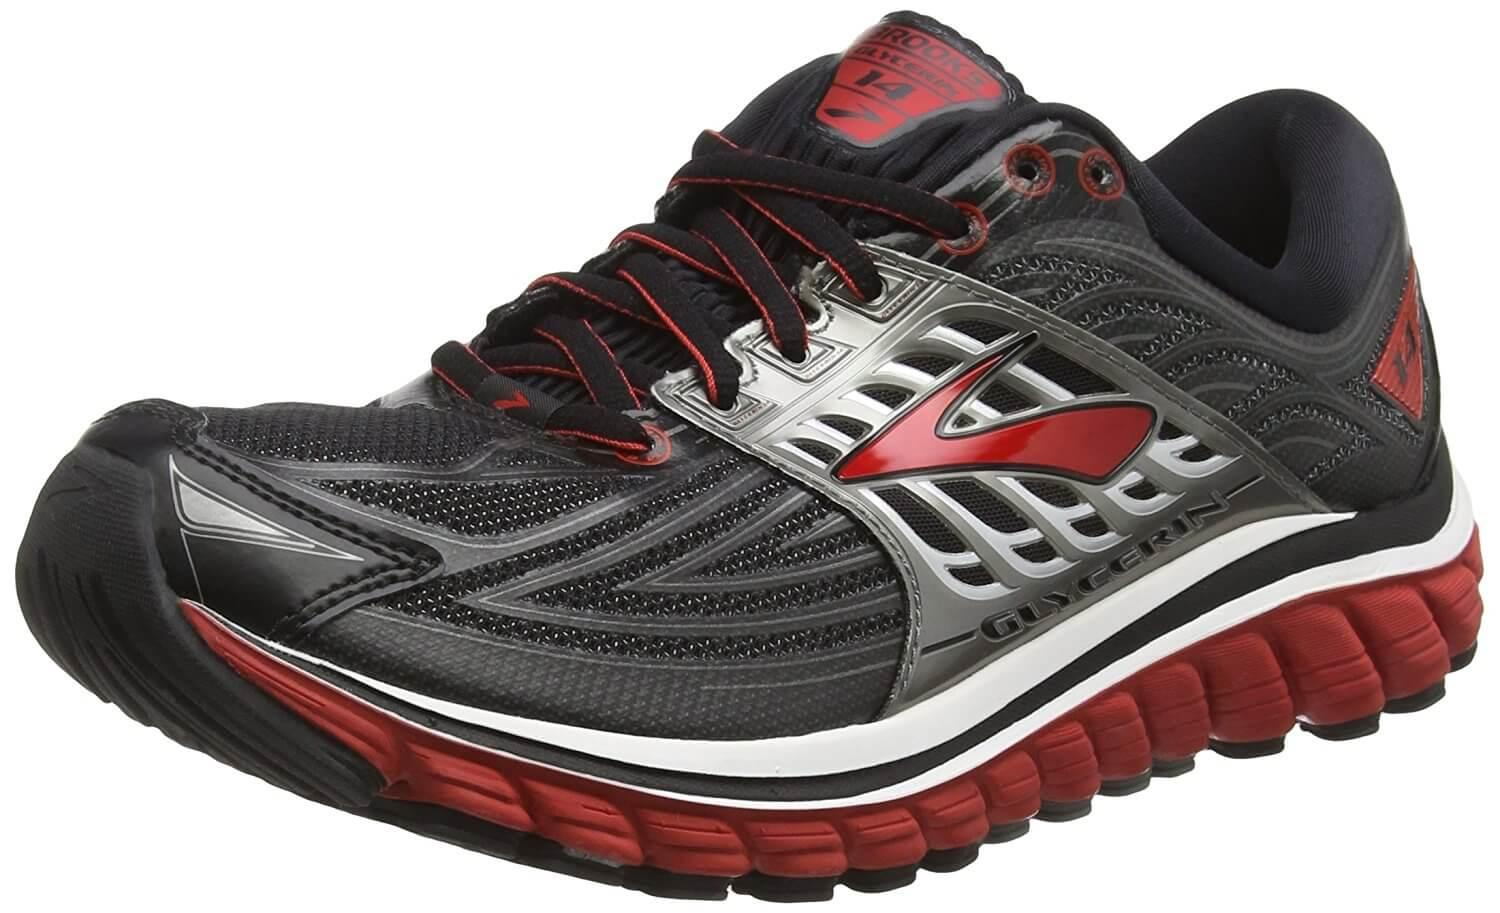 Brooks Glycerin 14 Reviewed - To Buy or Not in Apr 2019  1c14f10db